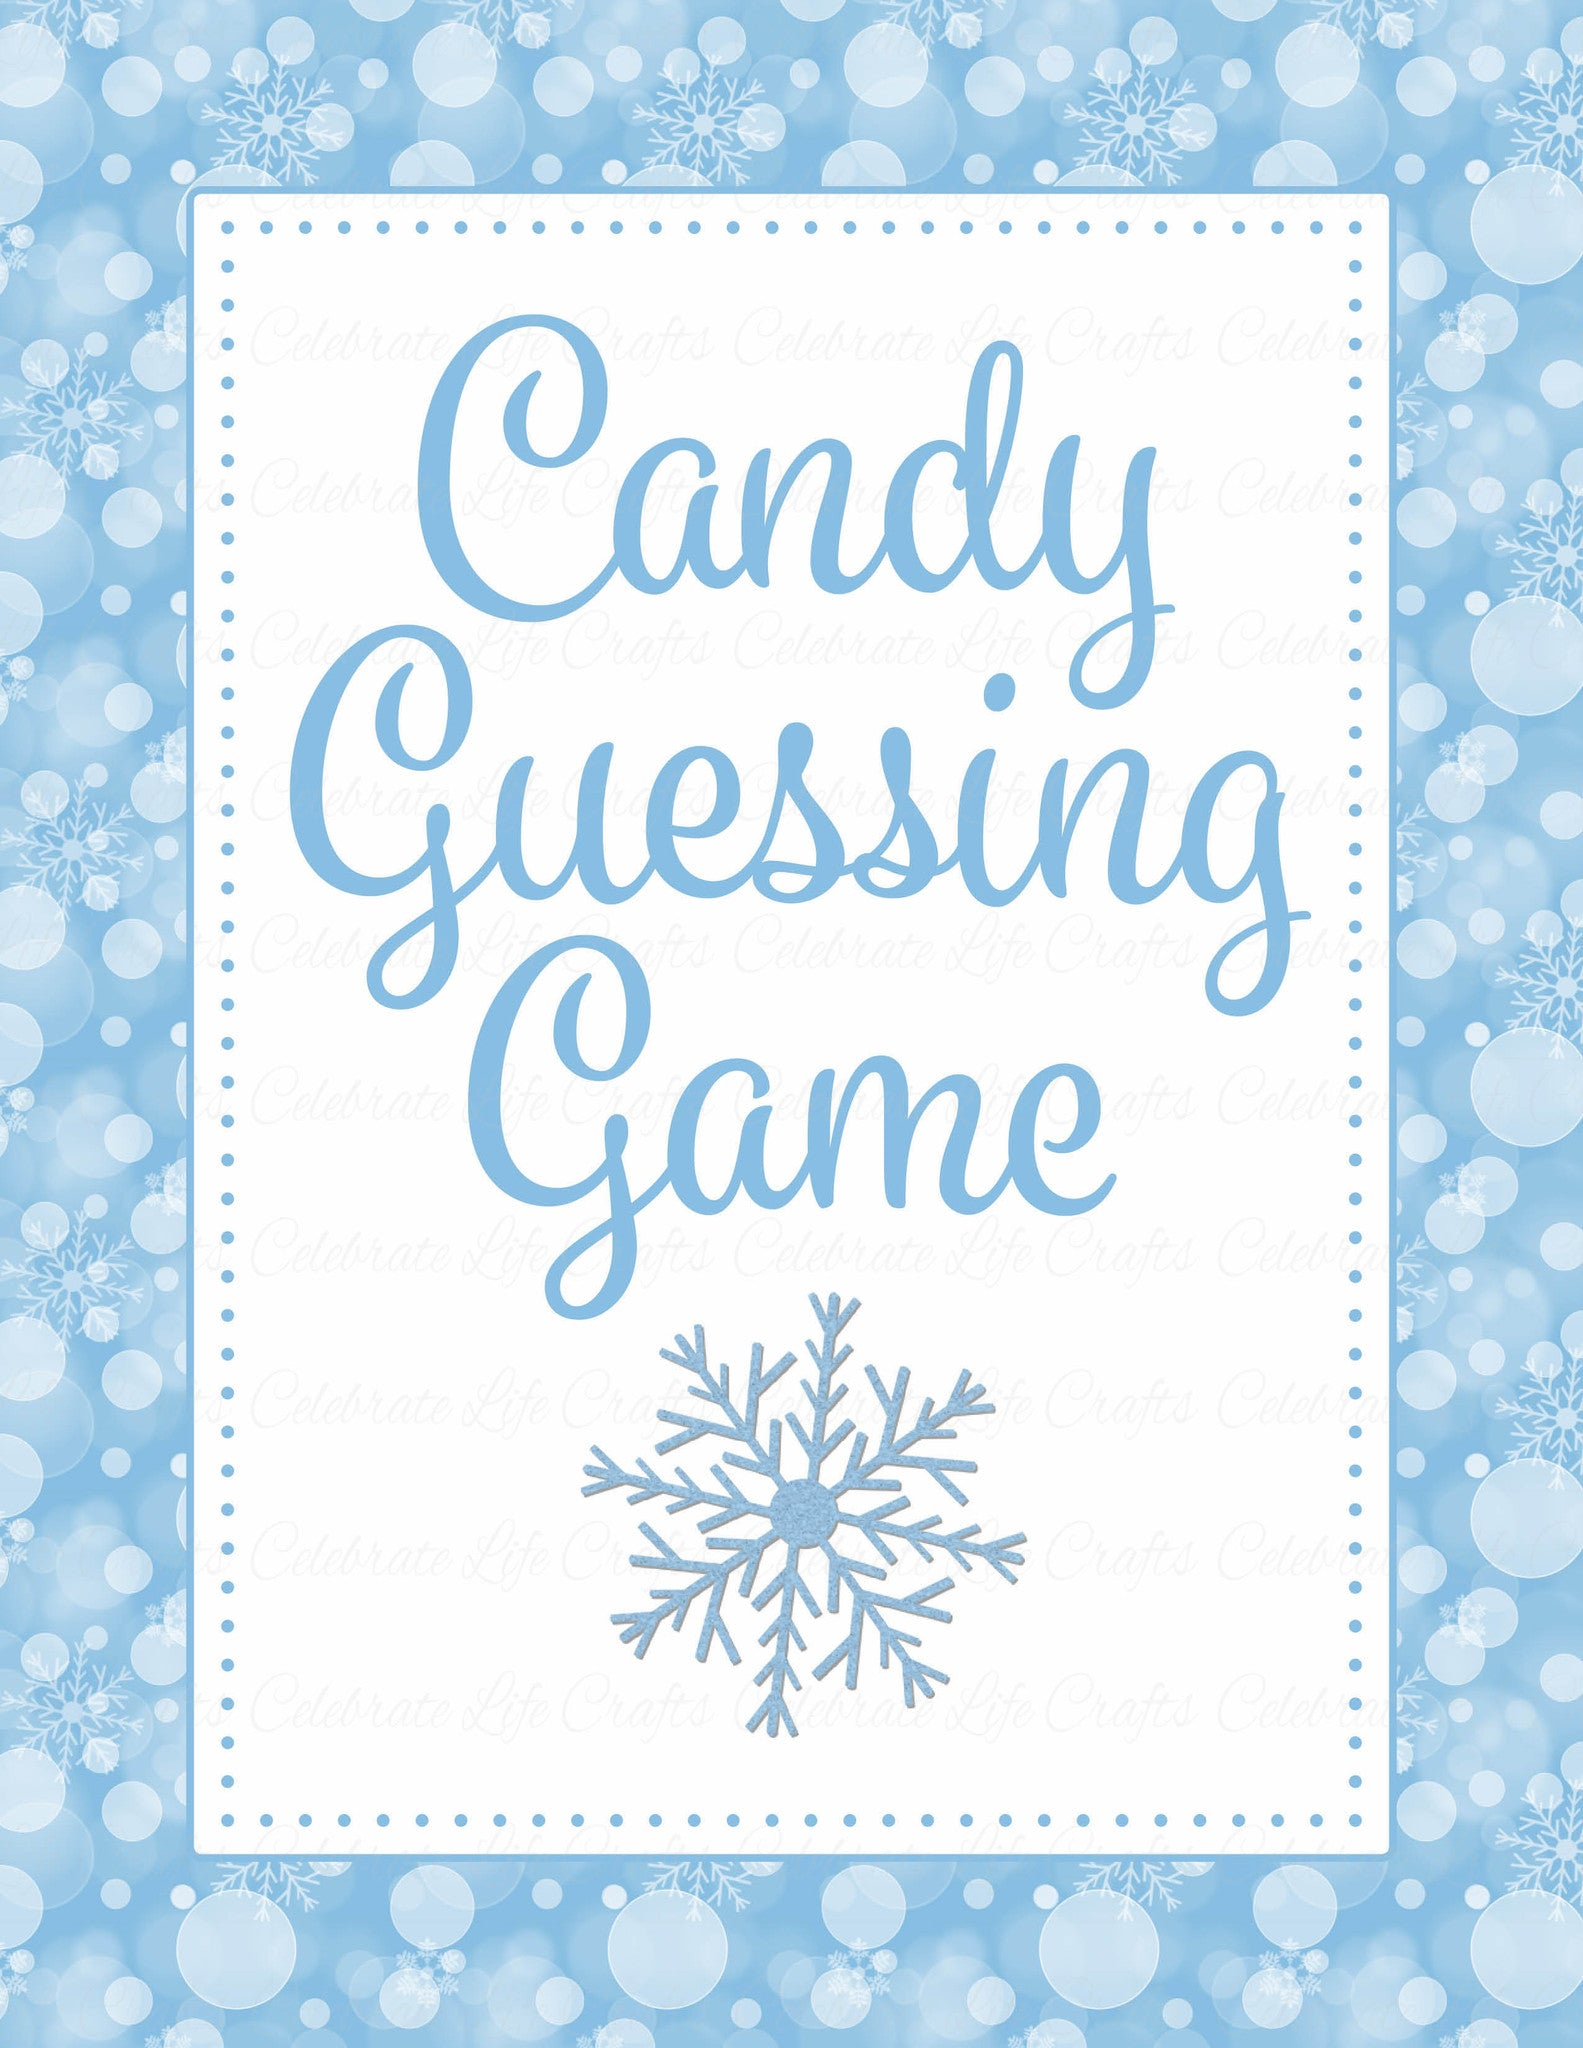 image about Guess Who Game Printable named Sweet Guessing Match - Printable Down load - Blue Bokeh Wintertime Child Shower Recreation - B22002